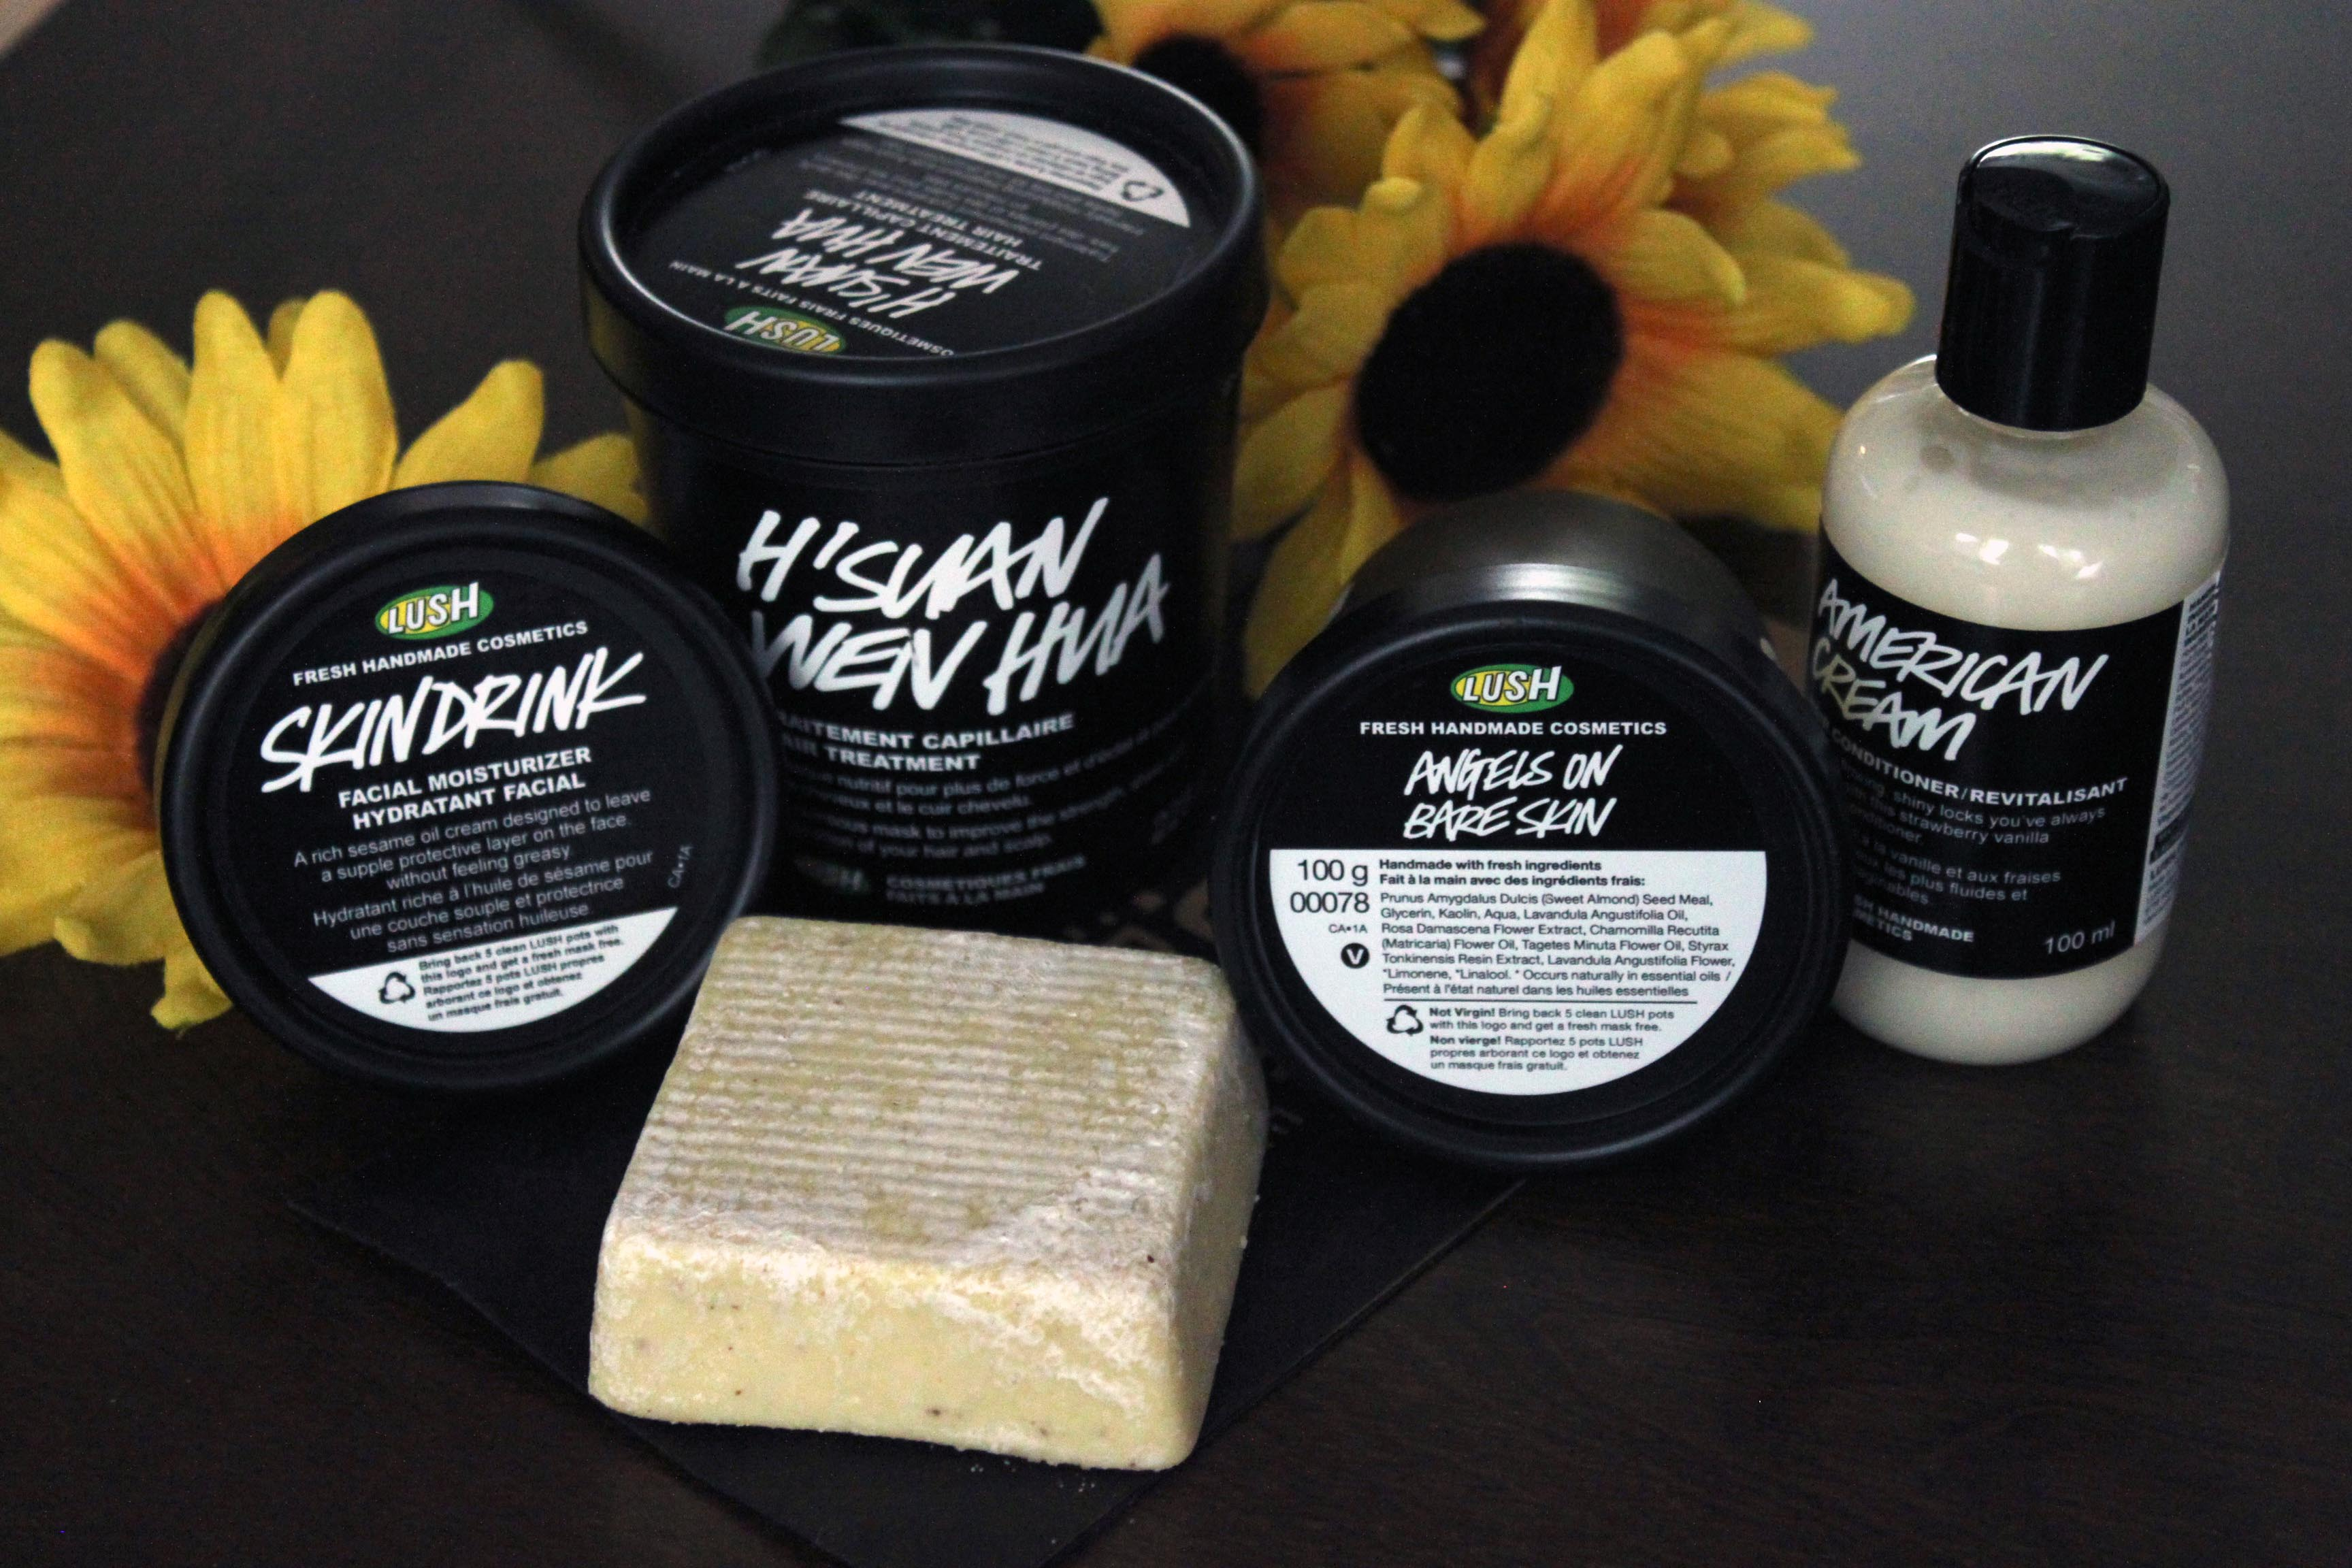 LUSH Skin and Haircare Haul